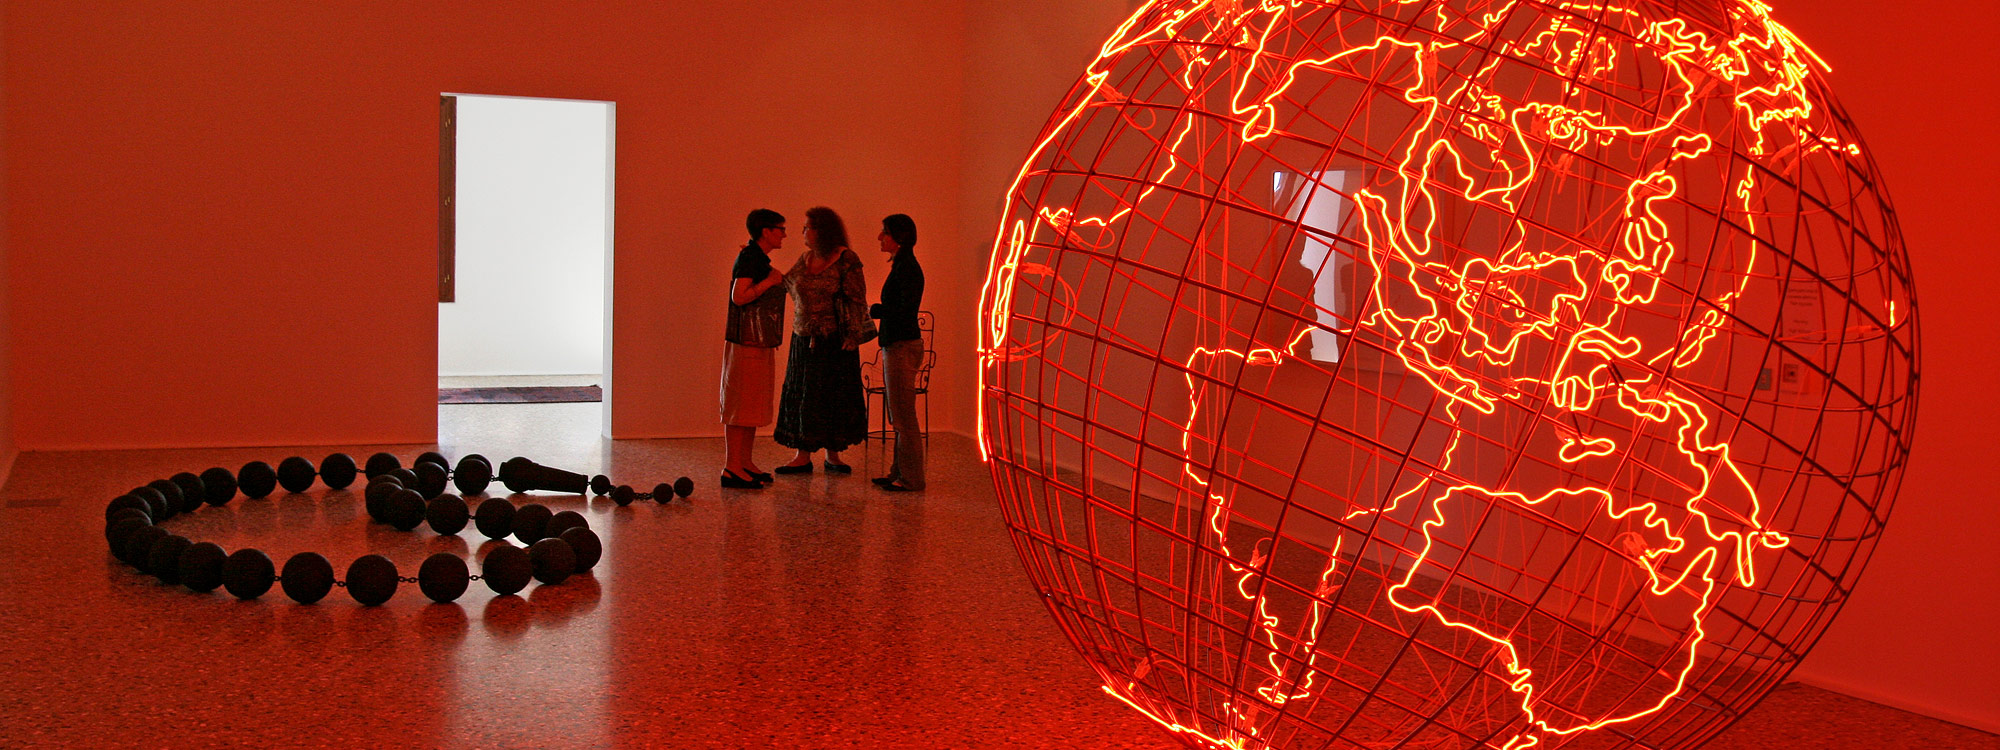 Mona Hatoum. © Photo: Universes in Universe